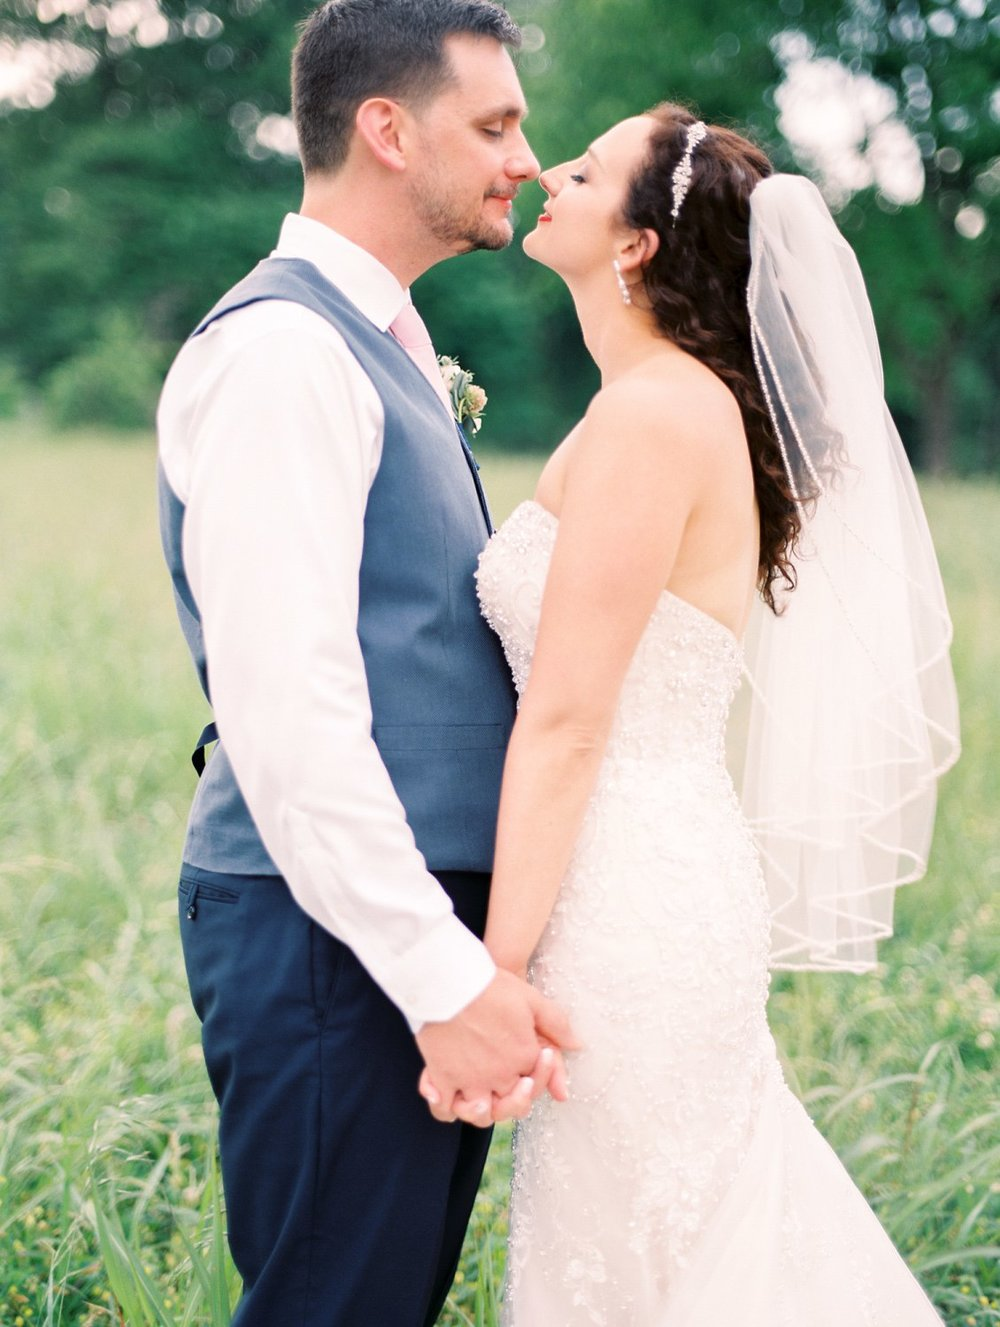 heartland meadows wedding | knoxville wedding photographer